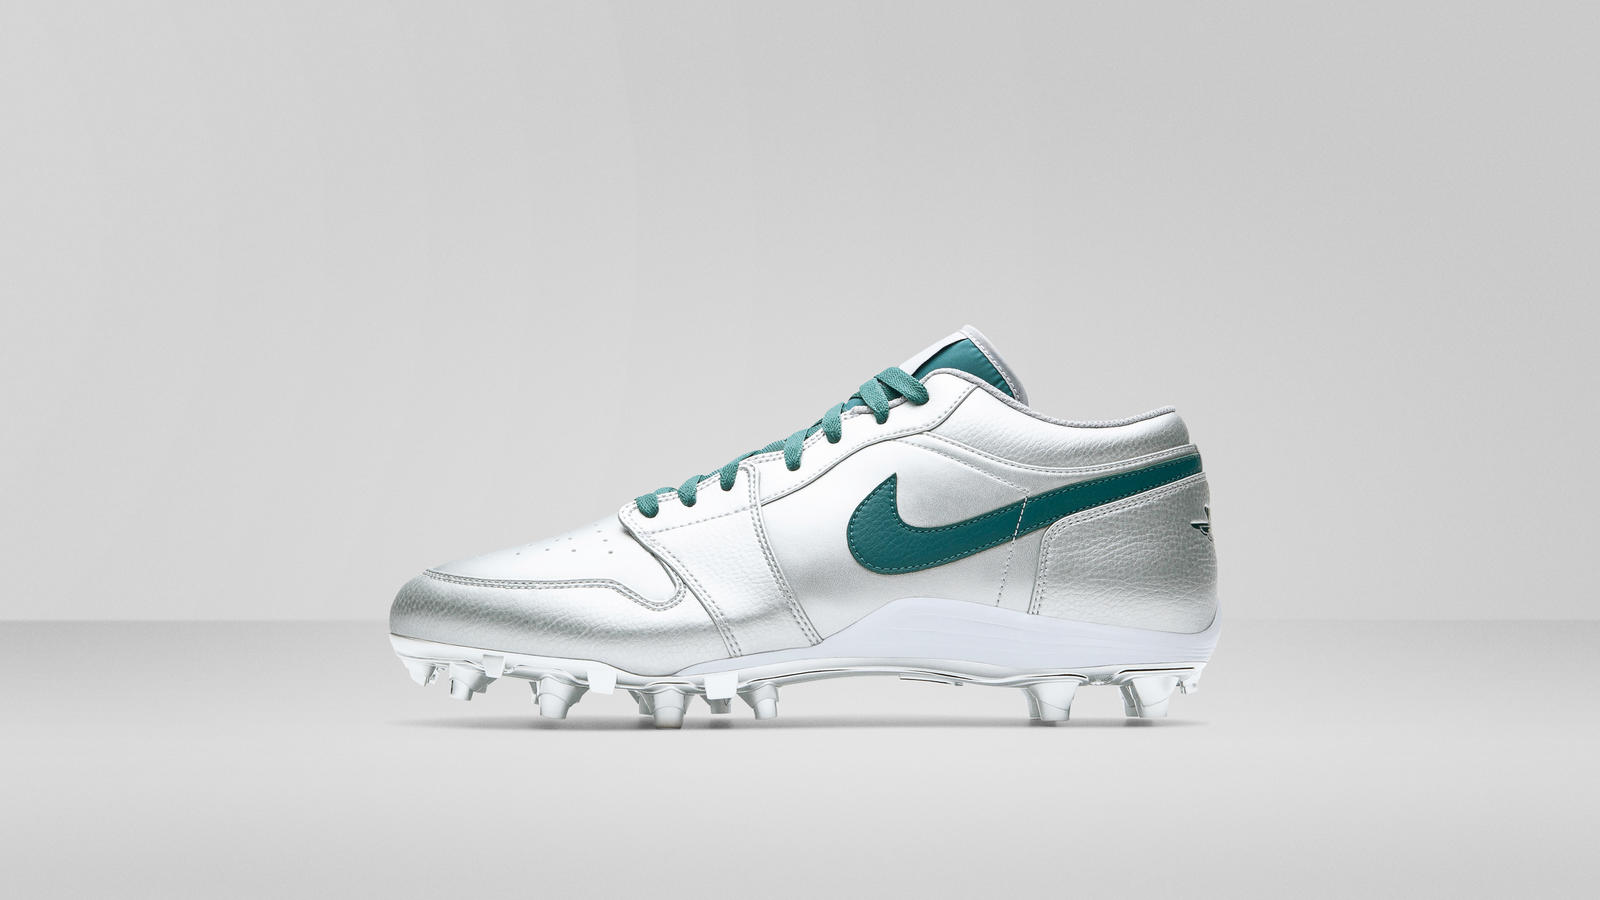 Jordan Brand Cleats NFL Opening Week 2019 3